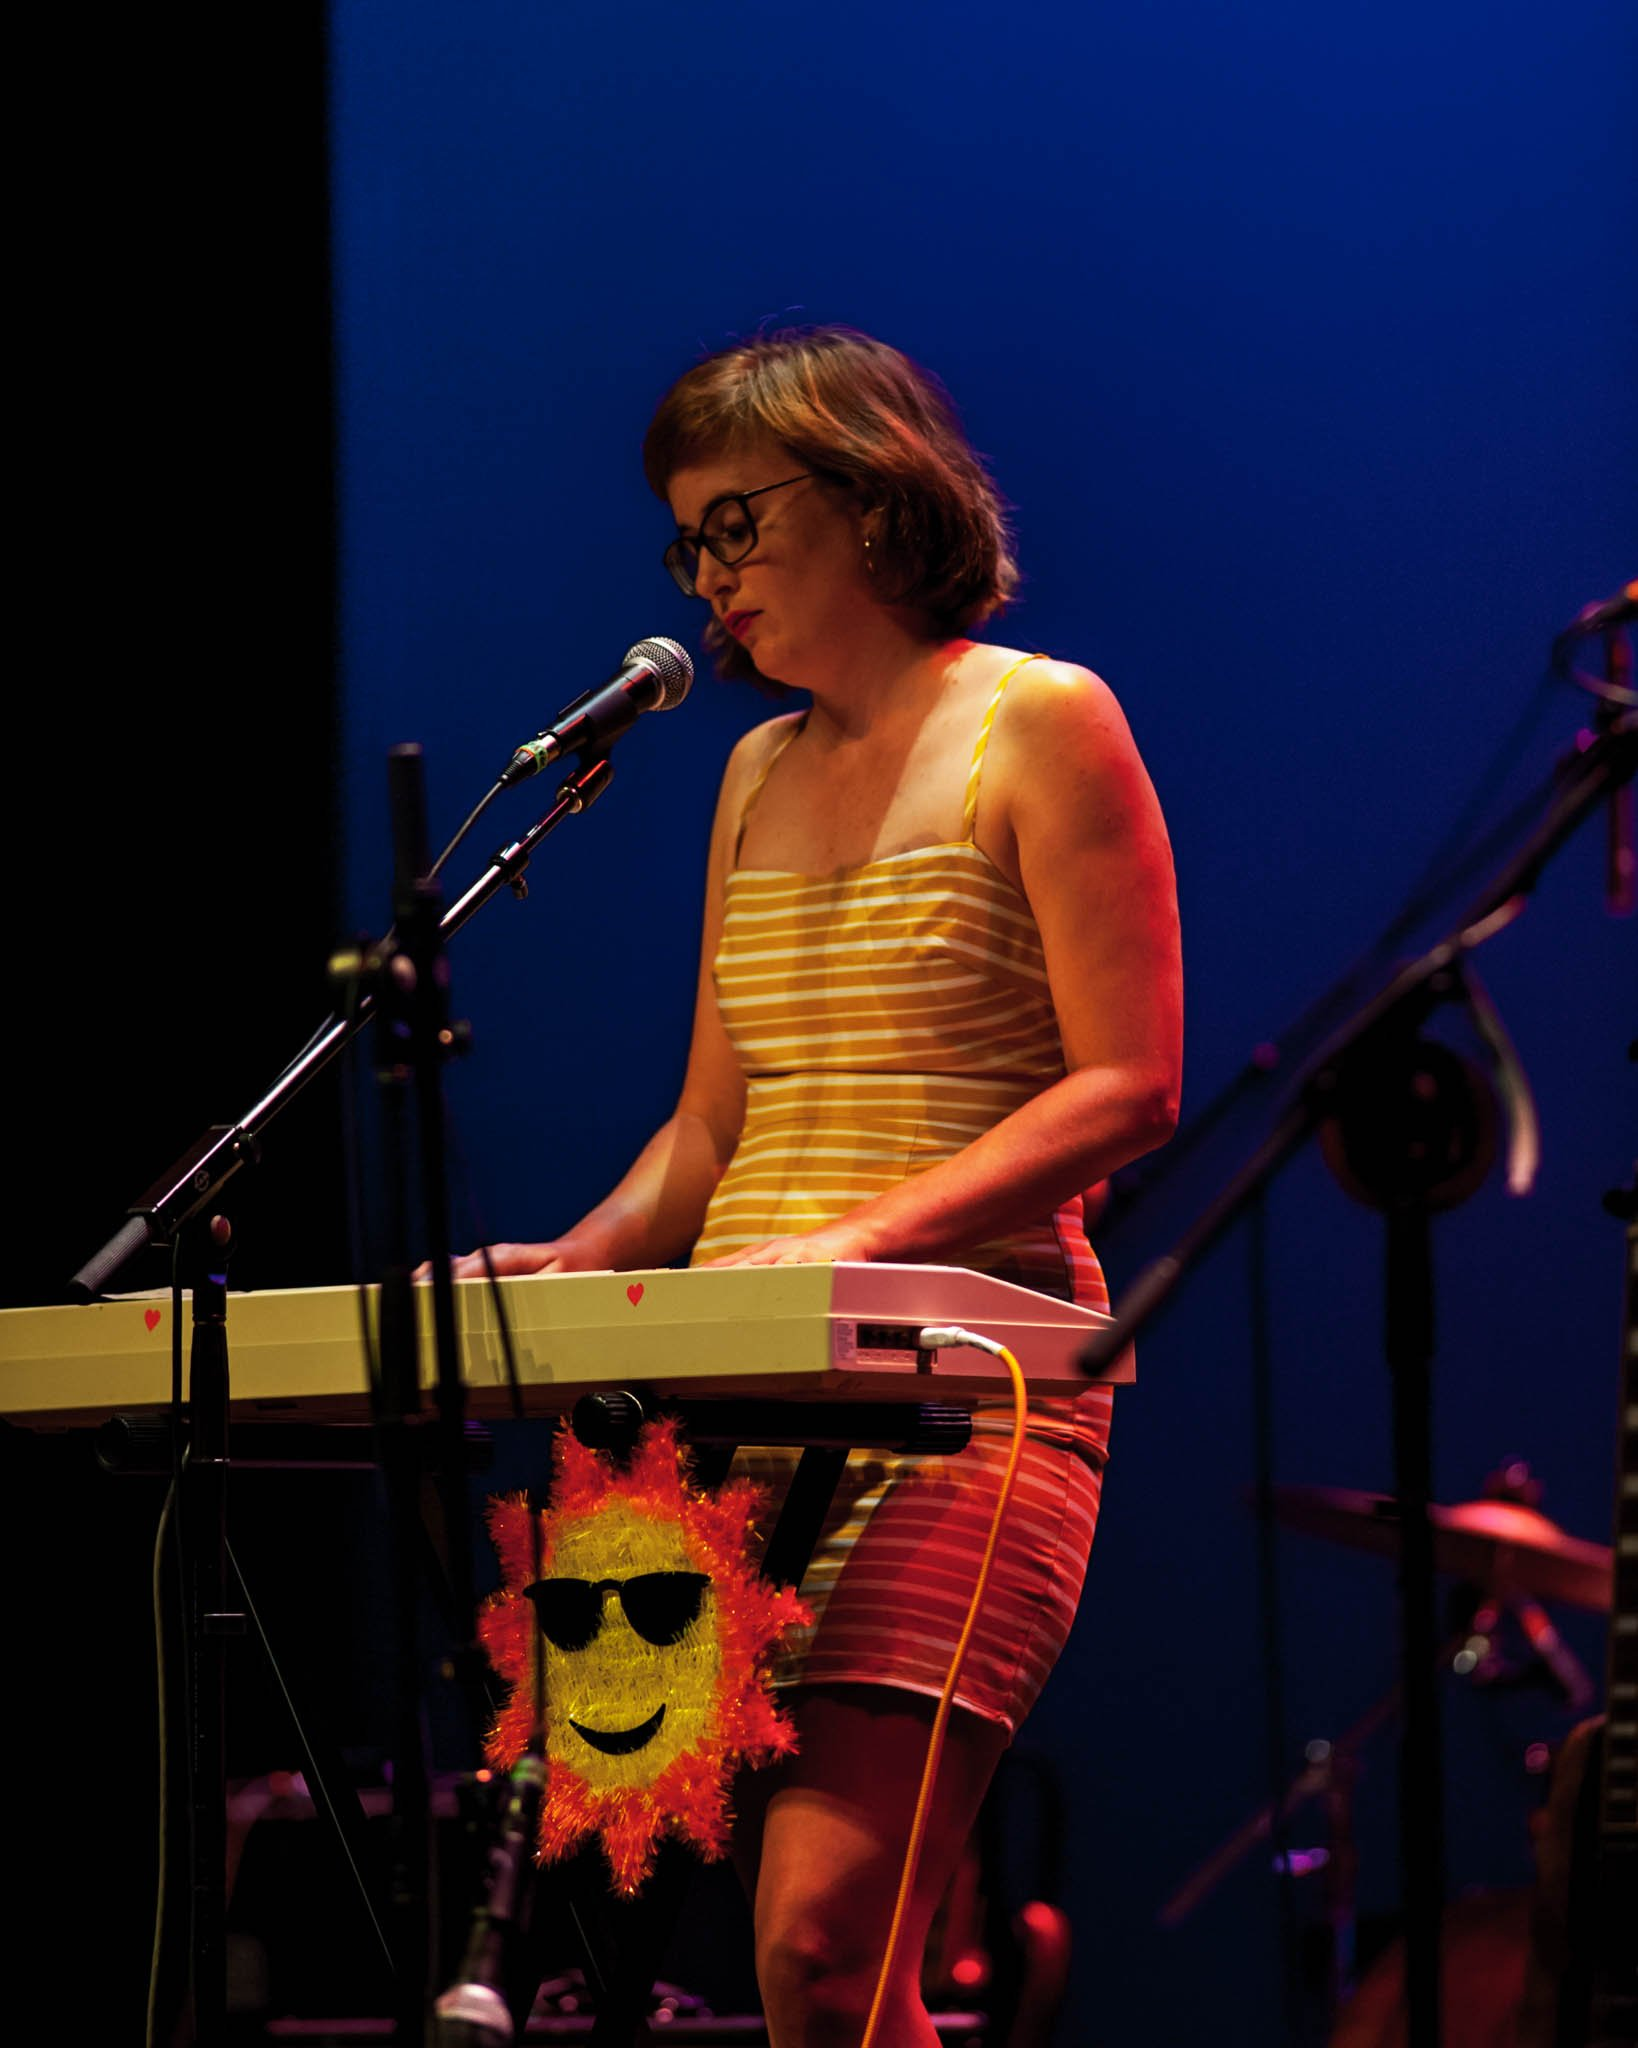 Hot Tang playing at The Englert Theatre in Iowa City